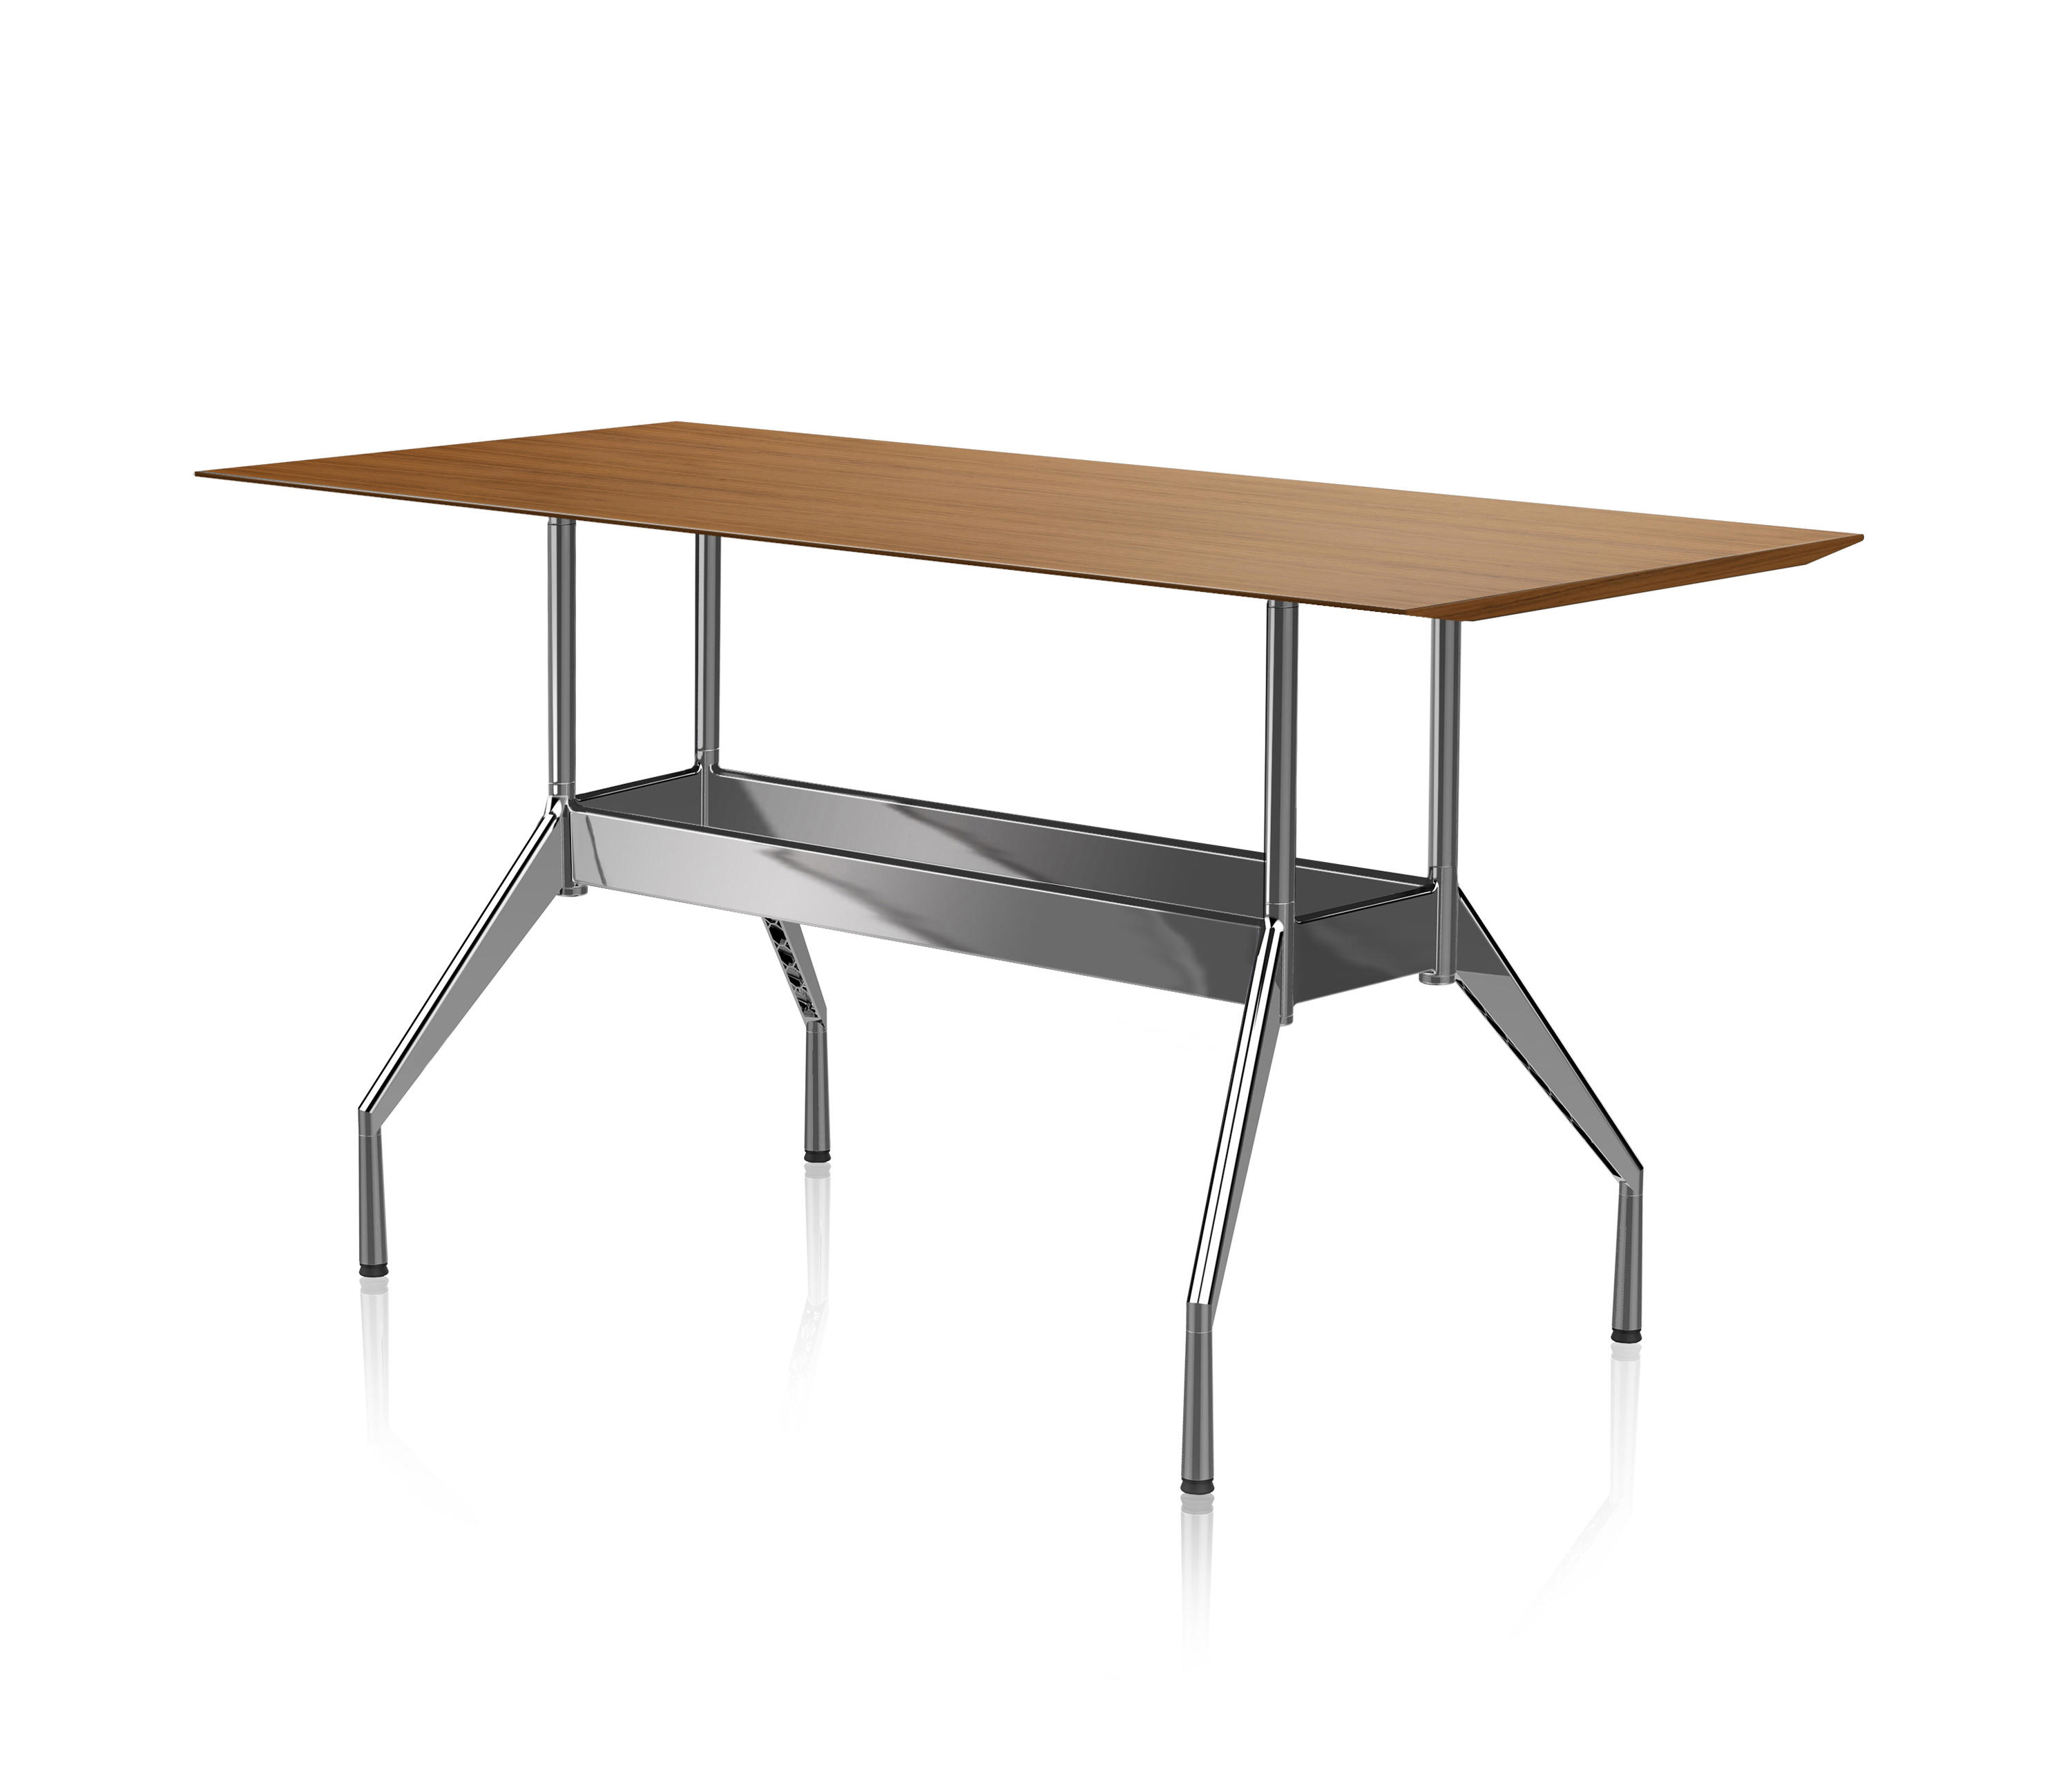 fallon stand up table standing tables from fr scher architonic. Black Bedroom Furniture Sets. Home Design Ideas